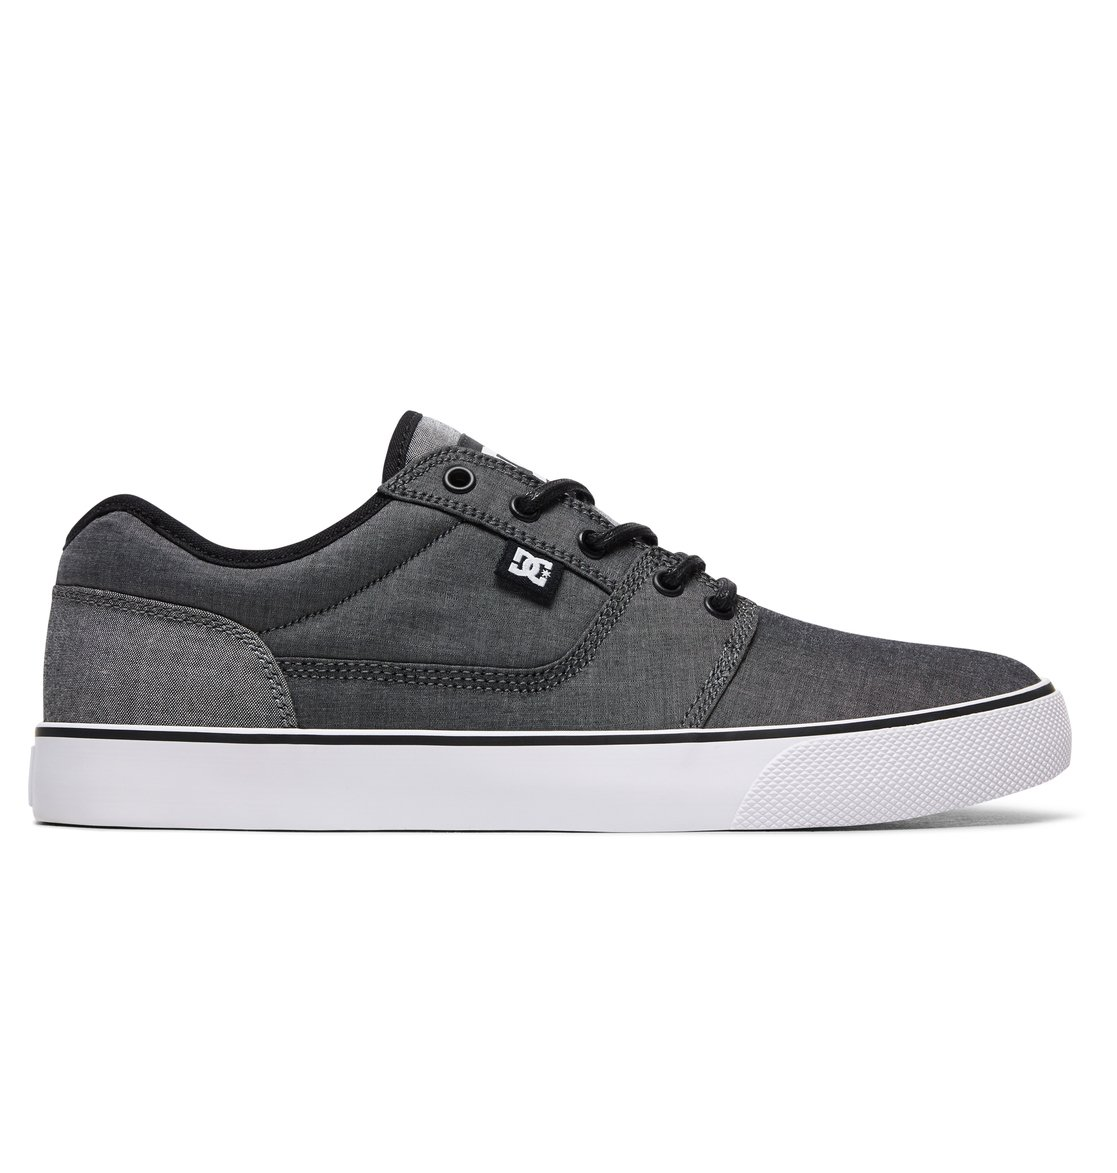 DC Shoes Tonik TX SE - Shoes - Zapatos - Chicos - EU 36.5 cQBeg